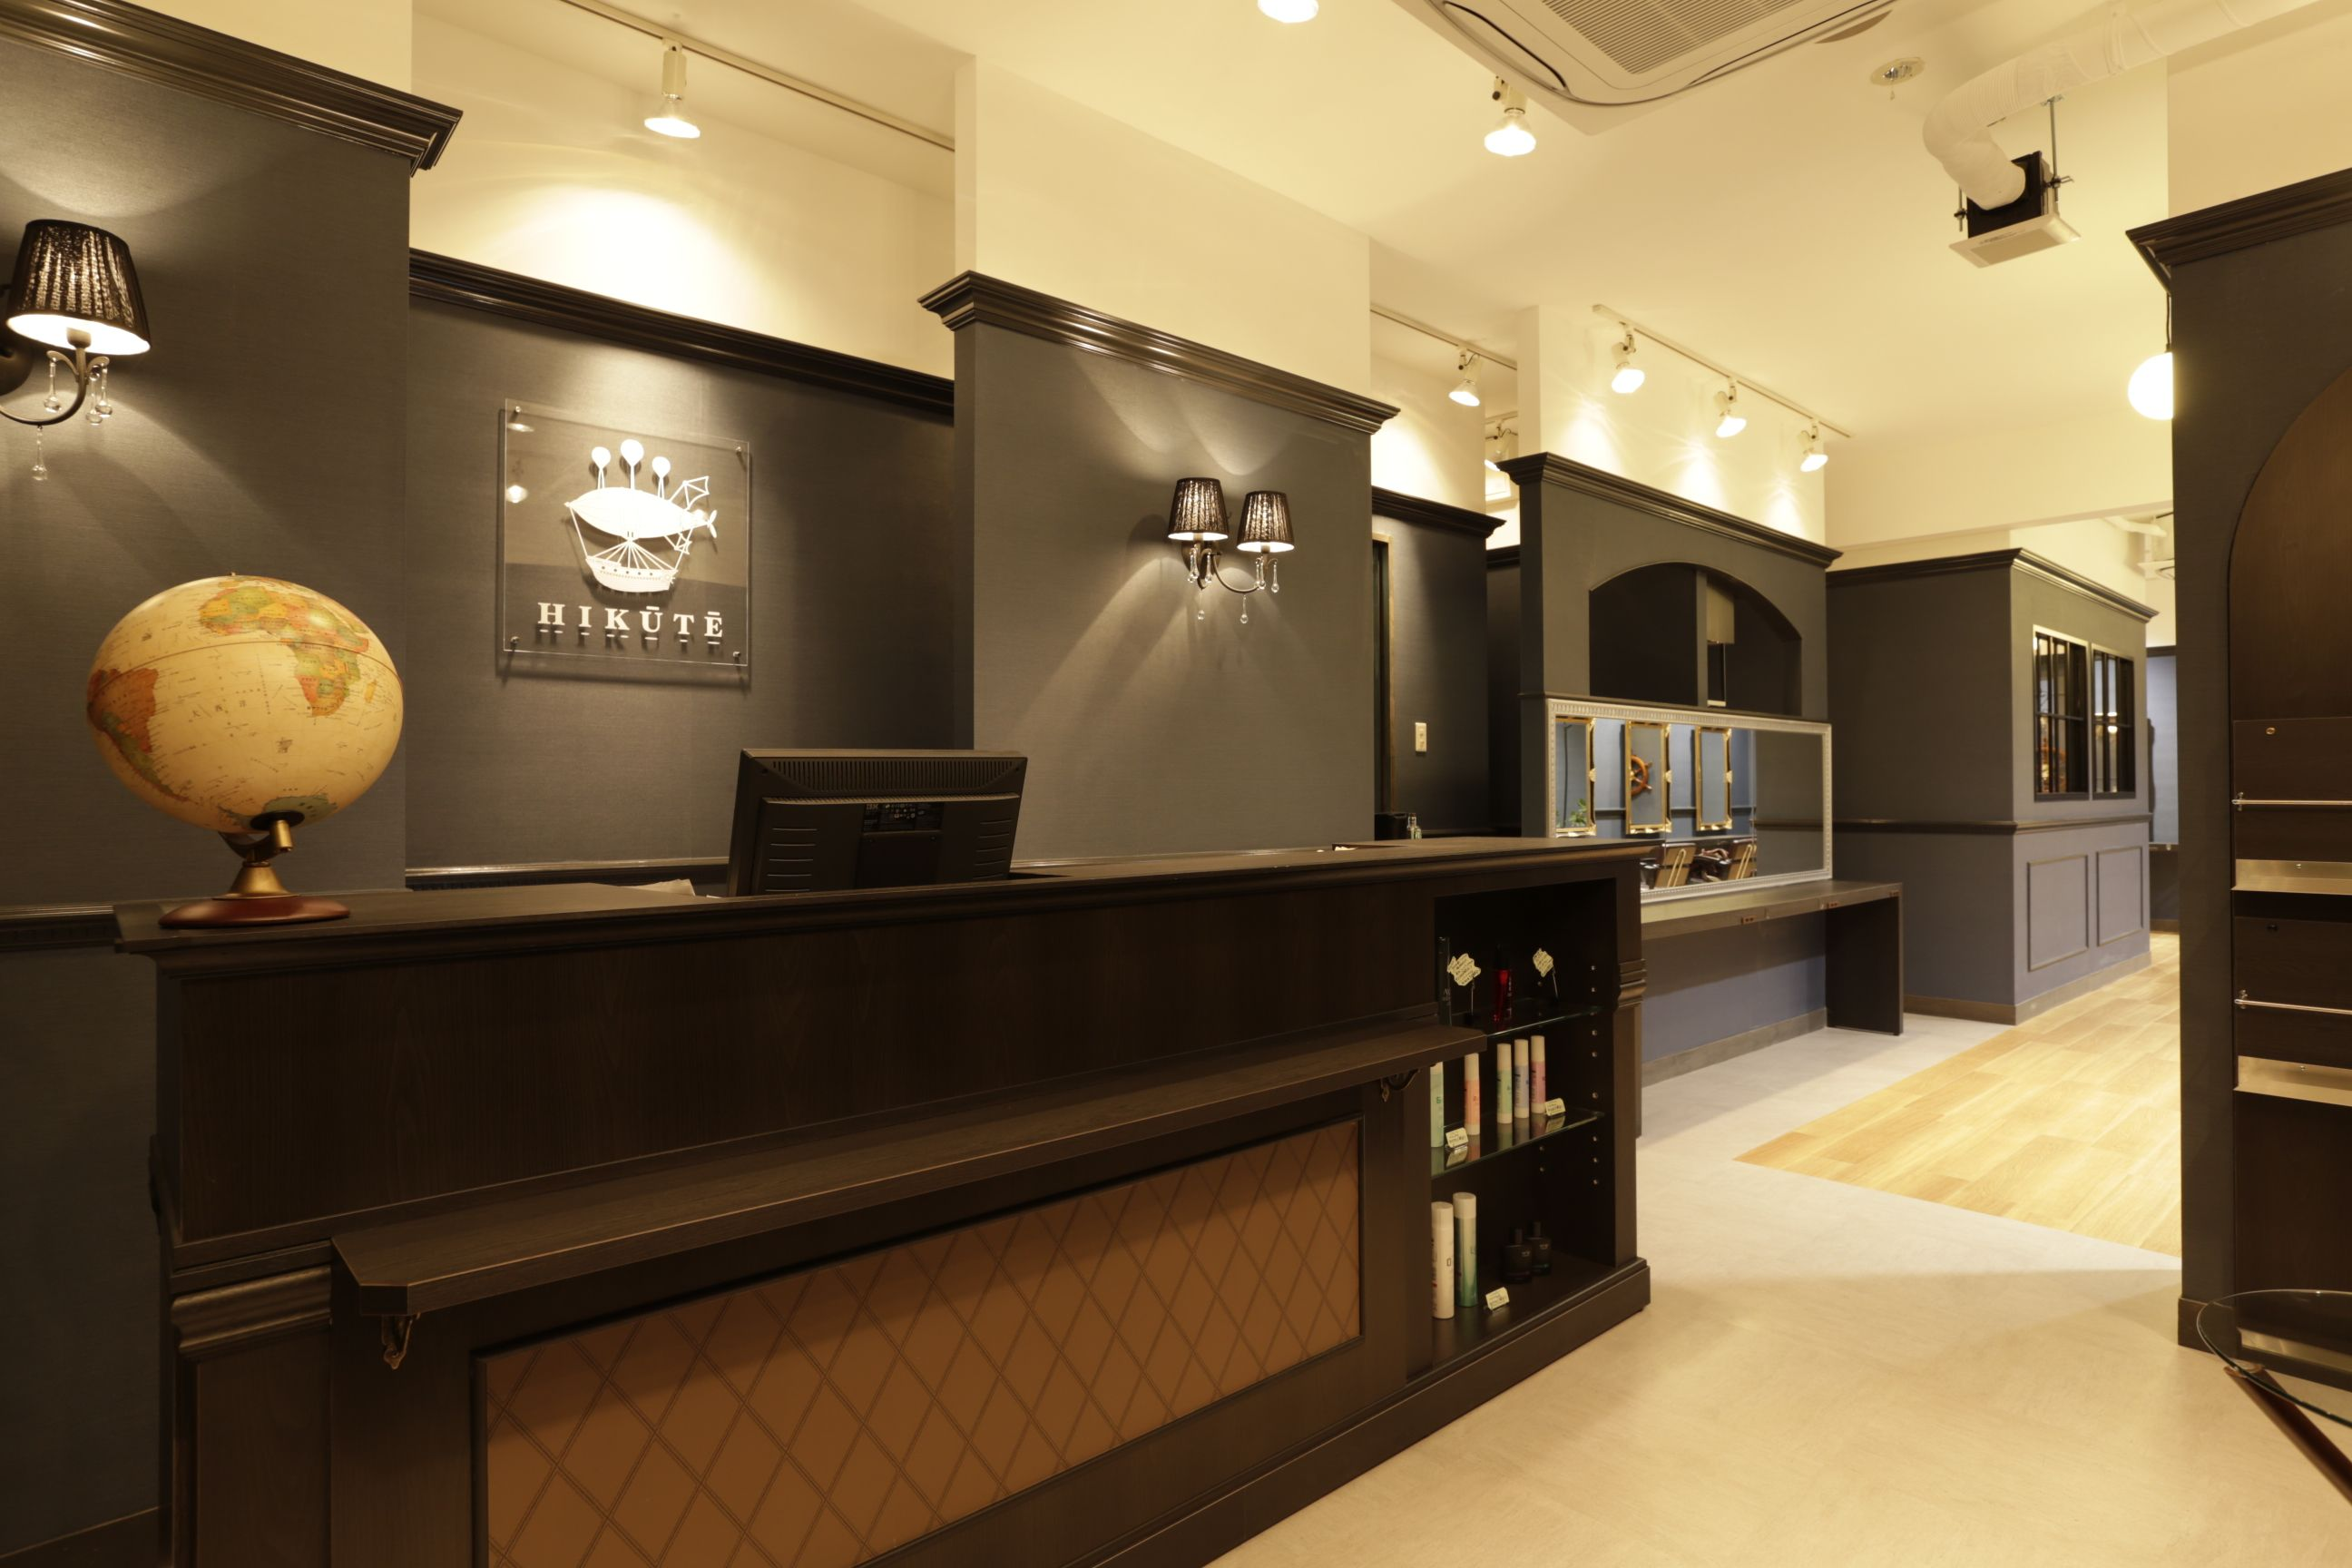 design salon design beauty salons spa design hair salons salon ideas